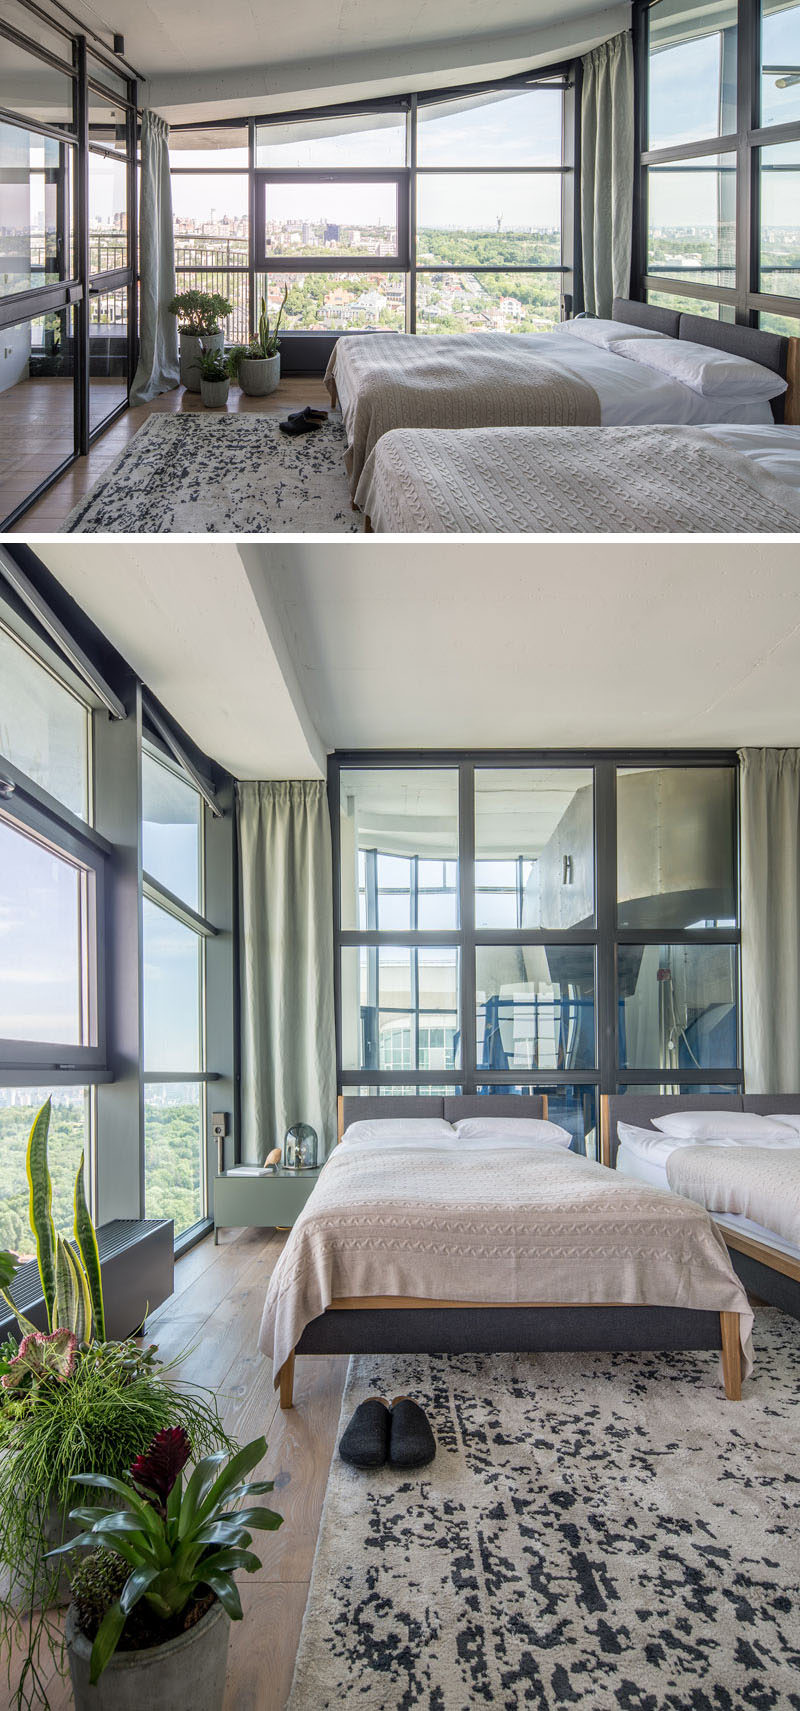 The guest bedroom of this industrial modern penthouse apartment features walls of steel framed glass. #Bedroom #Windows